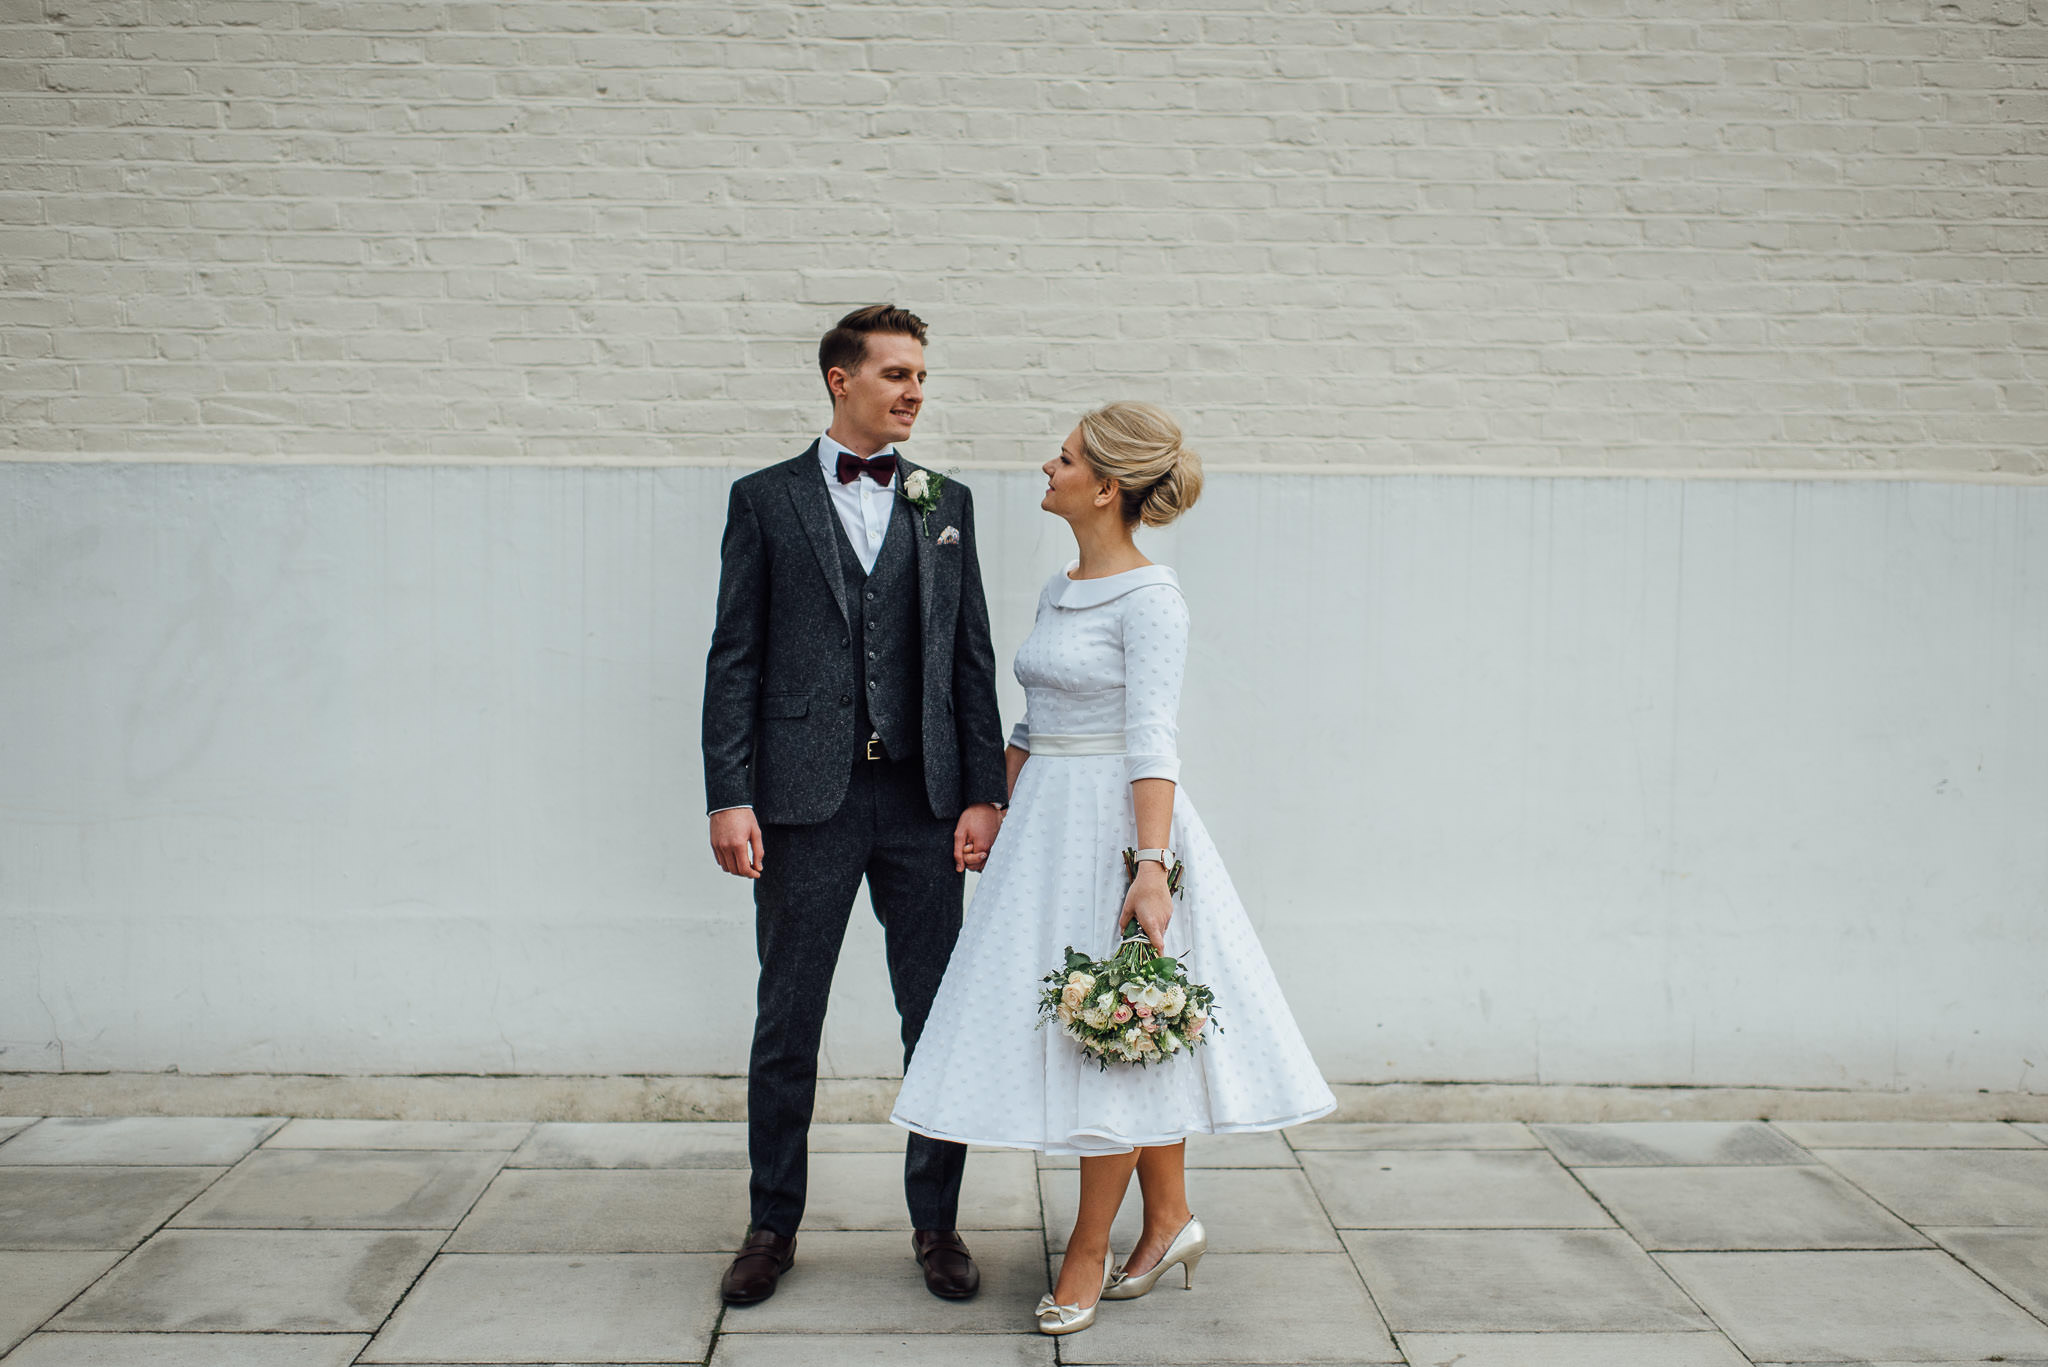 Cool bride and groom outside londesborough pub in stoke newington town hall wedding by creative and alternative london wedding photographer the shannons photography